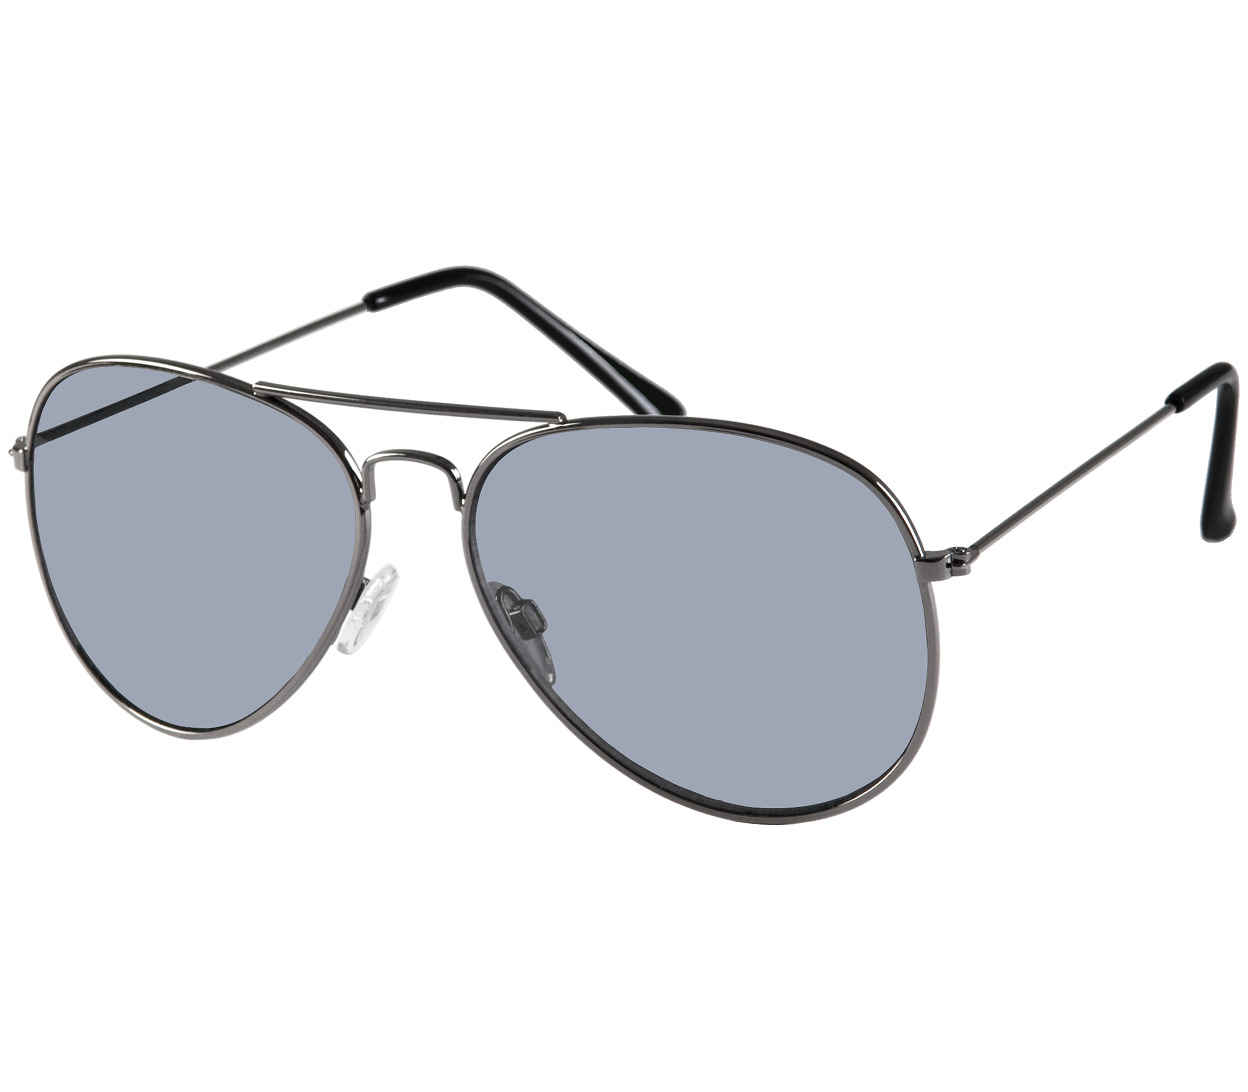 Main Image (Angle) - Ace (Gunmetal) Aviator Sun Readers